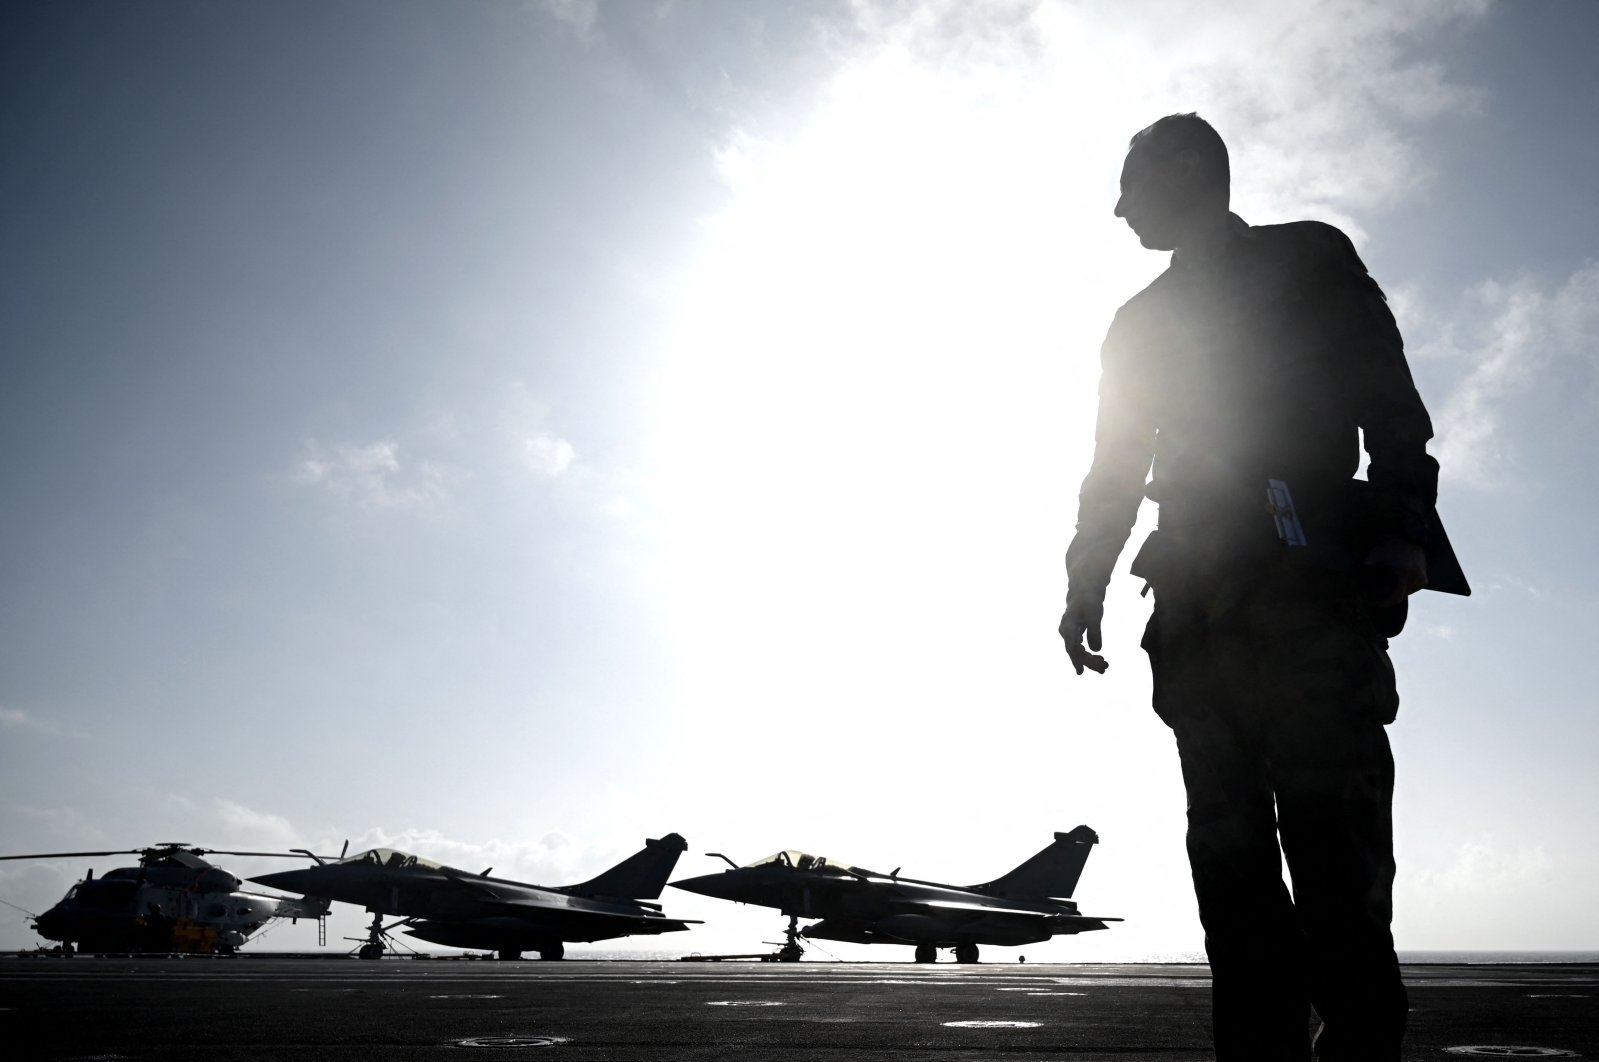 """A military officer looks on in front of Rafale jet fighters on the deck of the French aircraft carrier """"Charles de Gaulle"""" at sea, off the coast of Hyeres, Jan. 23, 2020 (AFP File Photo)"""